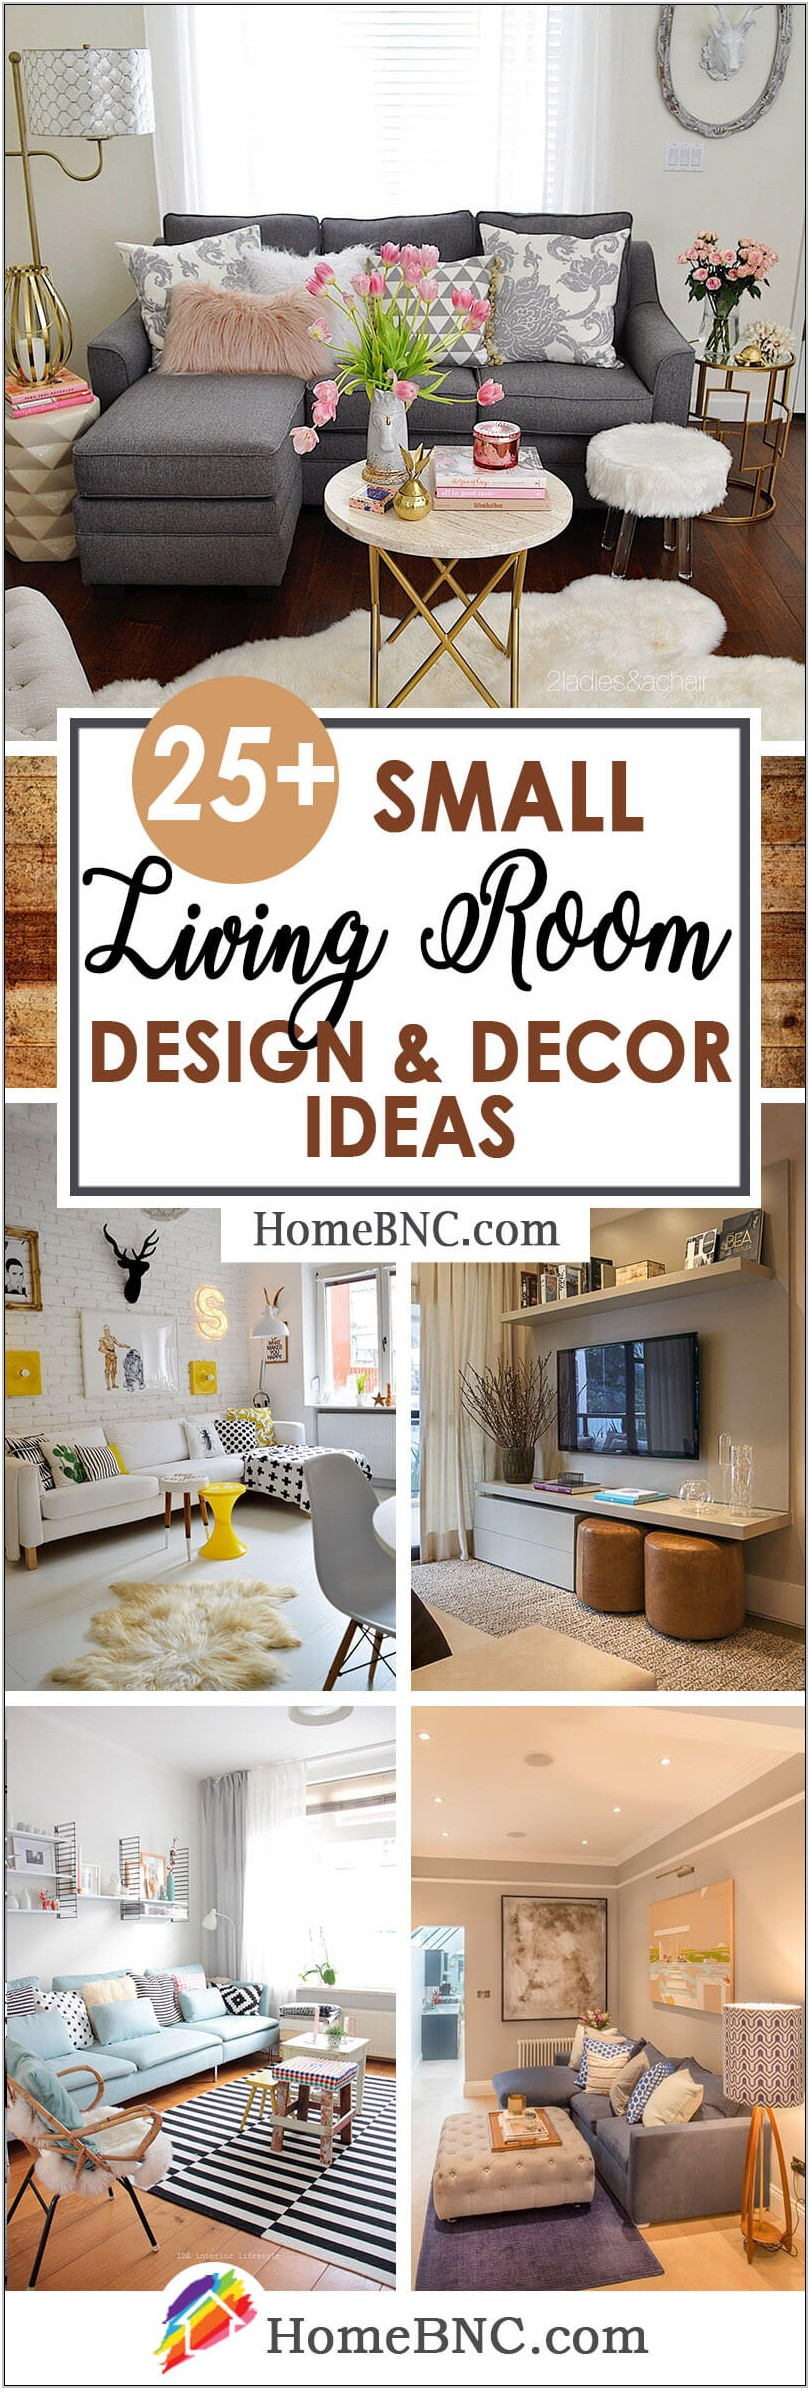 Small Living Room Design Ideas 2019